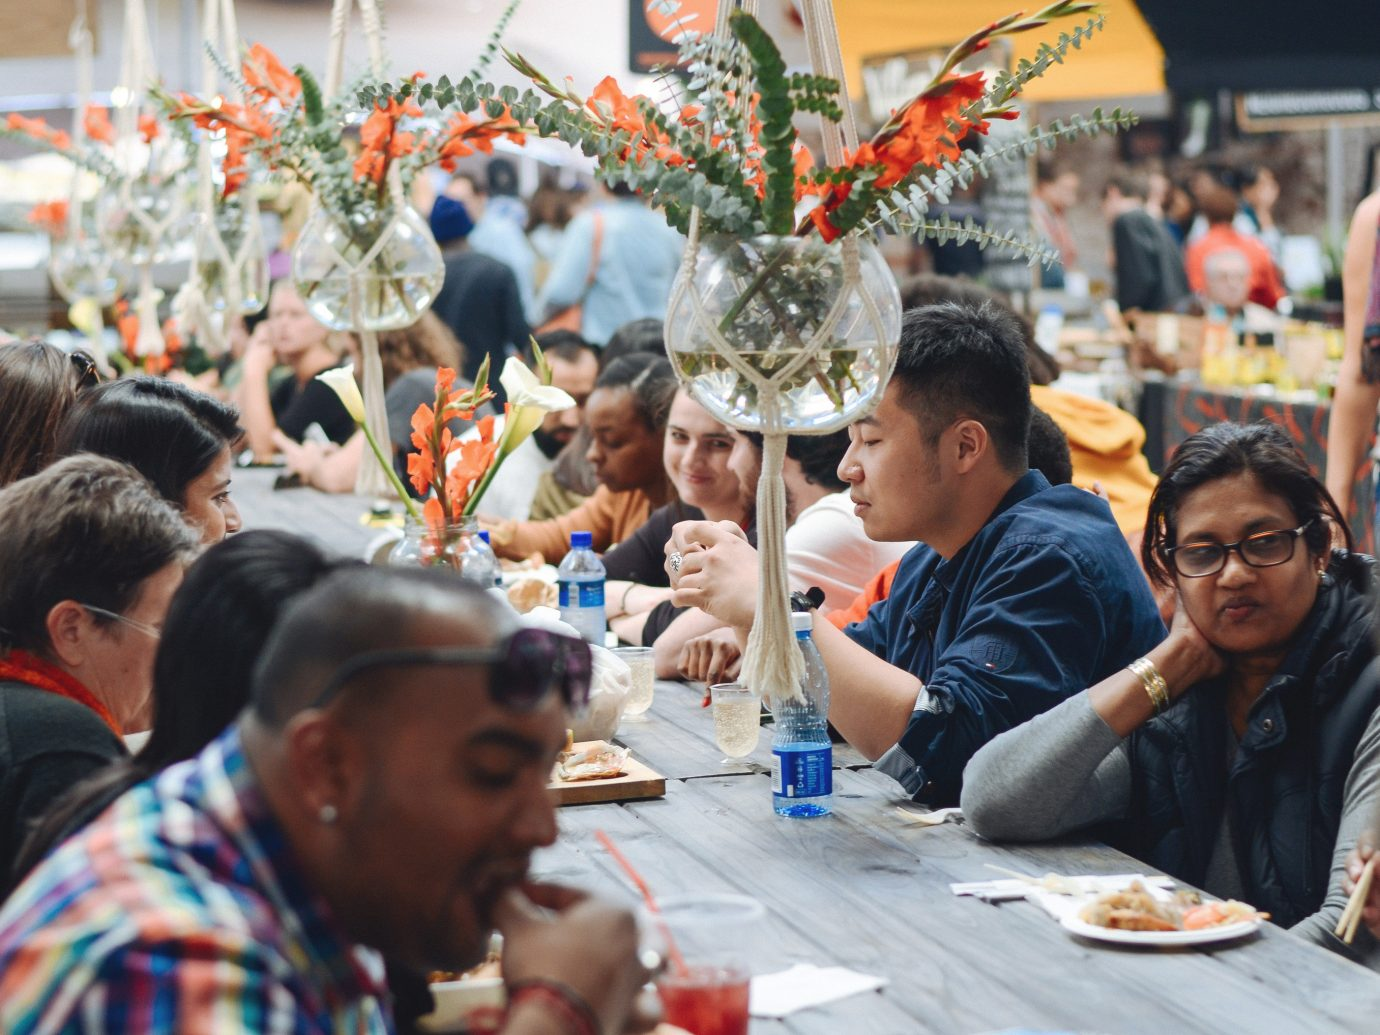 Food + Drink person crowd people scene festival